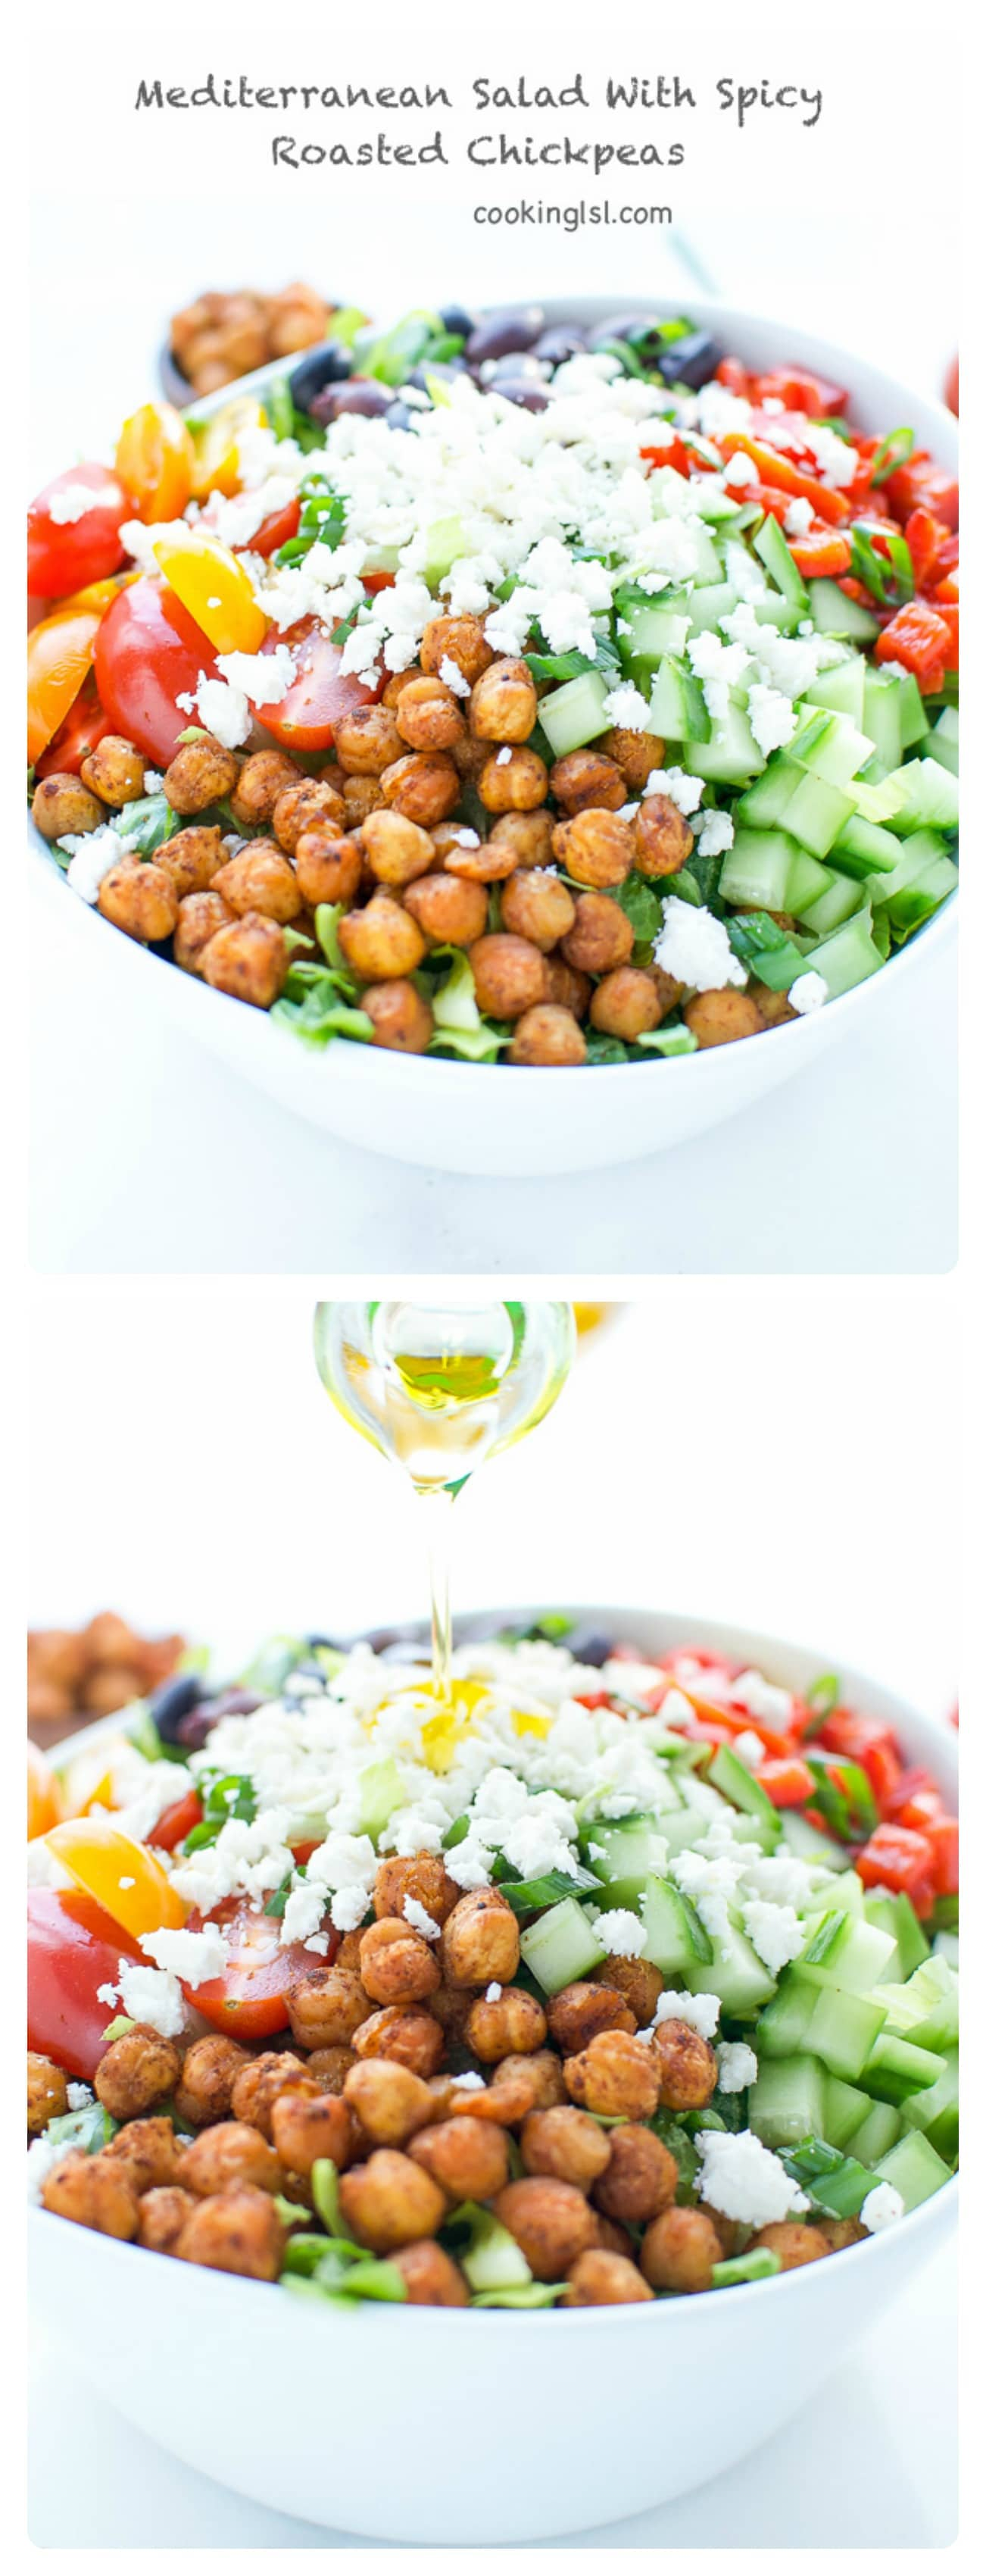 This Mediterranean Salad With Spicy Roasted Chickpeas is healthy, hearty and also full of protein, vitamins and fiber. Perfect for a weekday lunch.